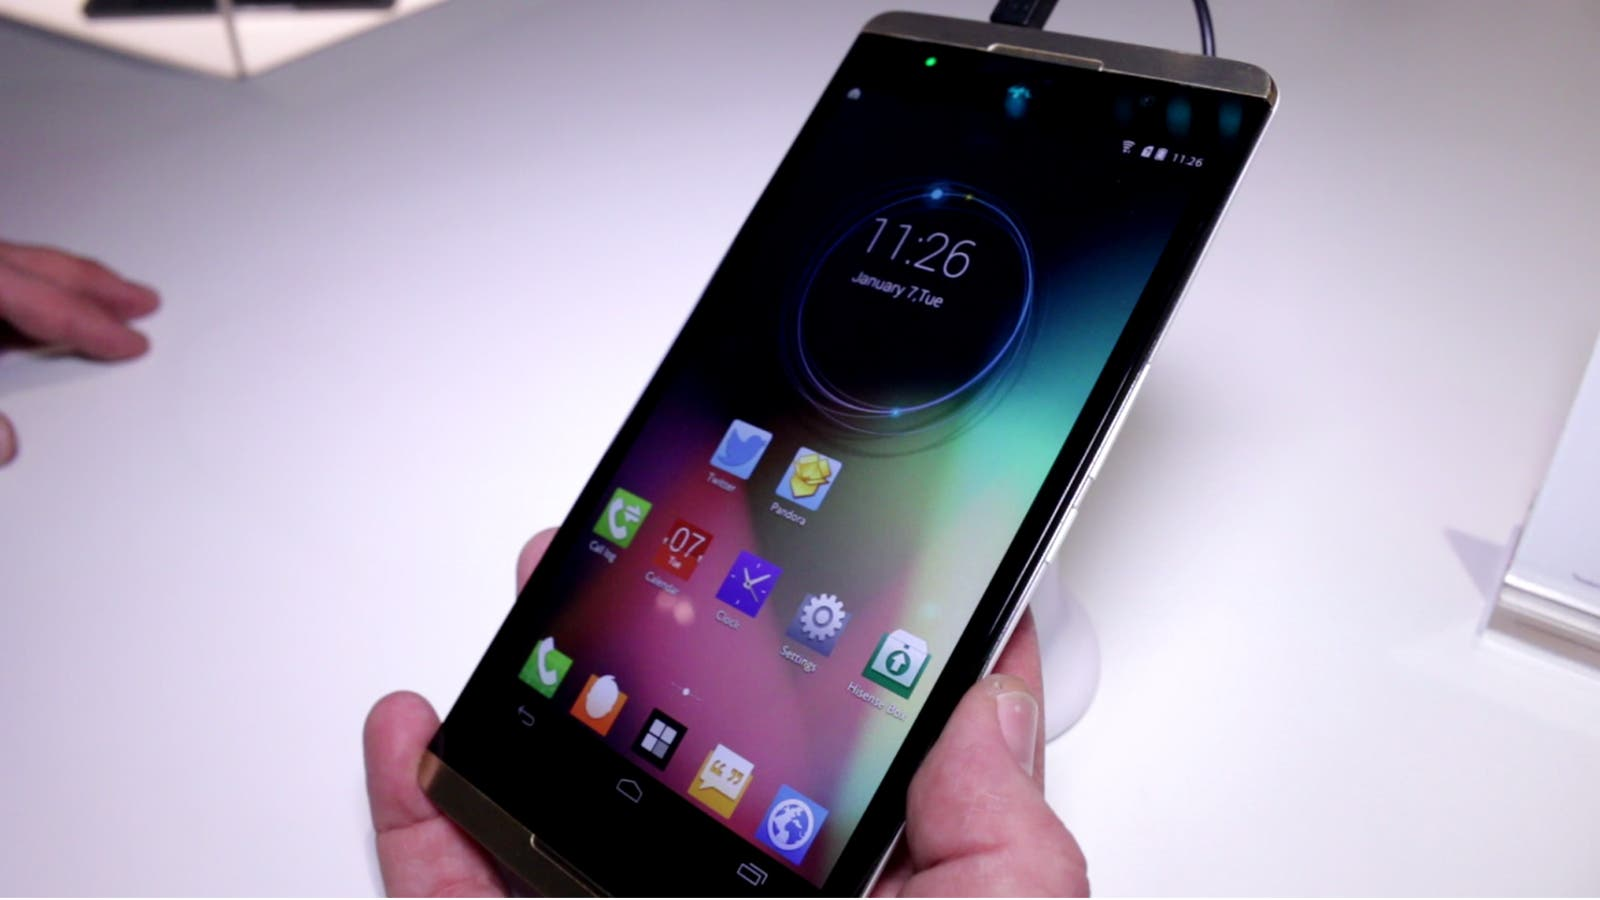 CES 2014: HiSense X1 – 6.8inch Full HD Phablet mit Snapdragon 800 im Hands on Video